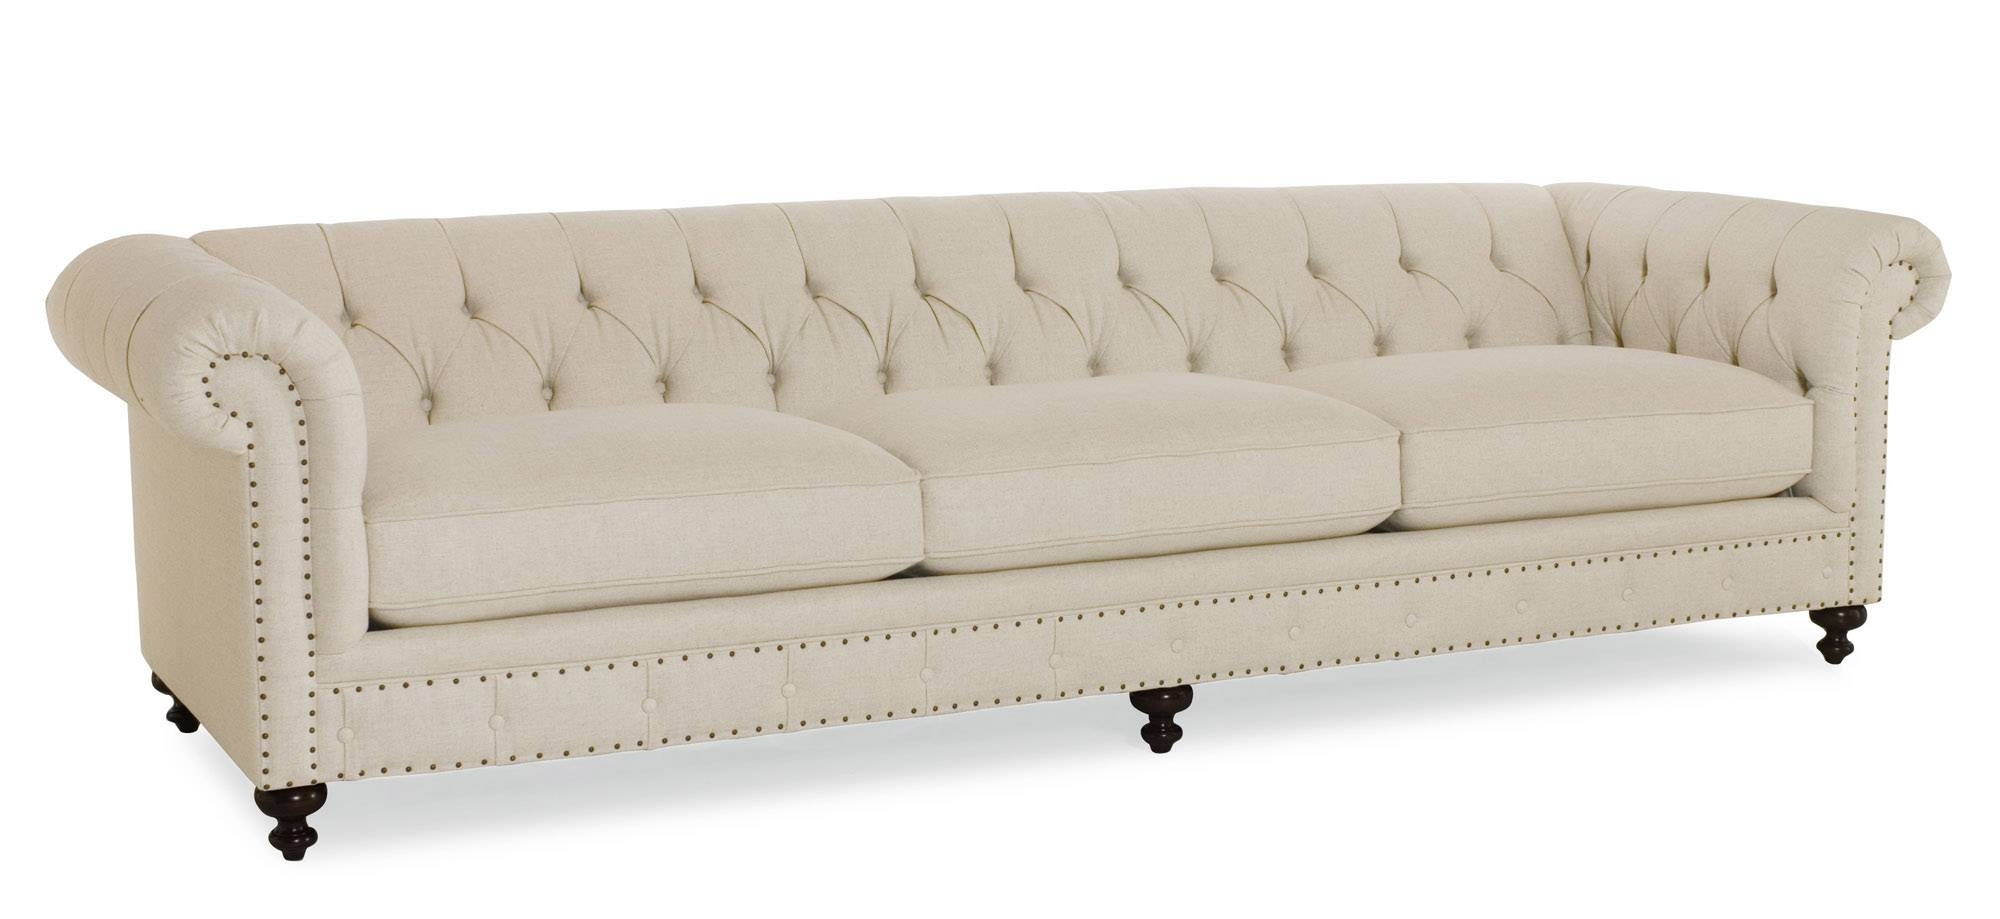 "Sofa (116-1/2"") 